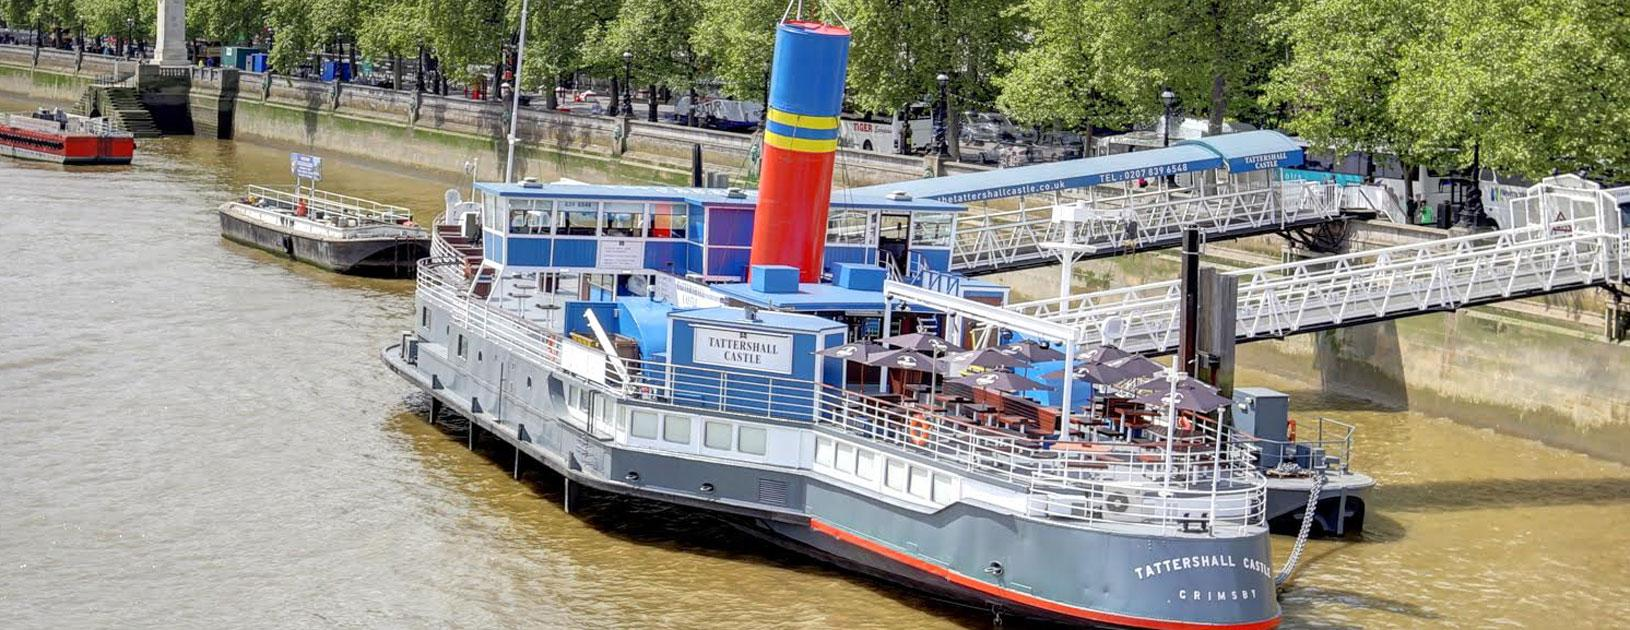 Speed Dating @ the Tattershall Castle, Embankment (32-44)